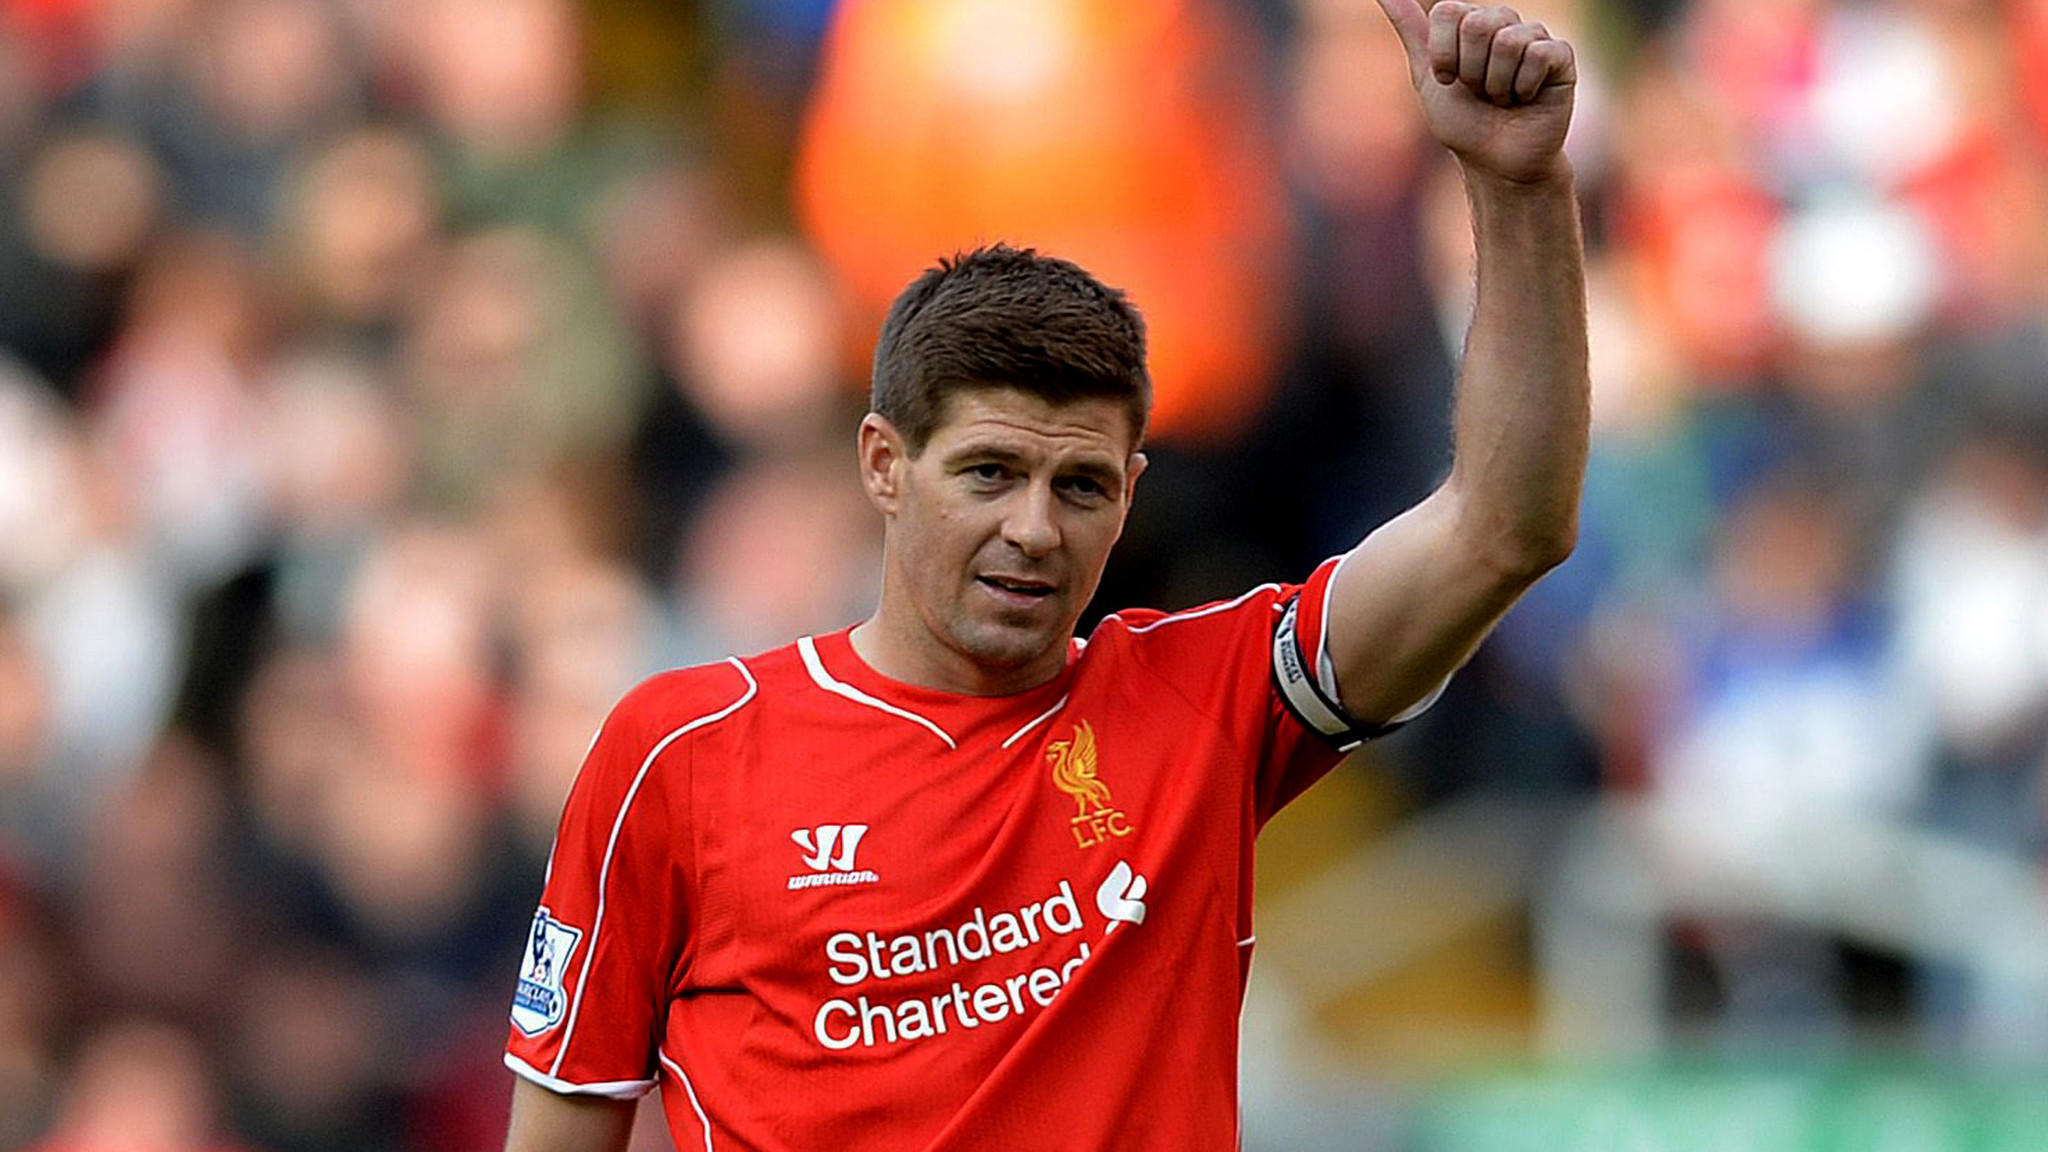 55a9d9789b09 After an illustrious playing career full of remarkable comebacks alongside  jarring Premier League lows